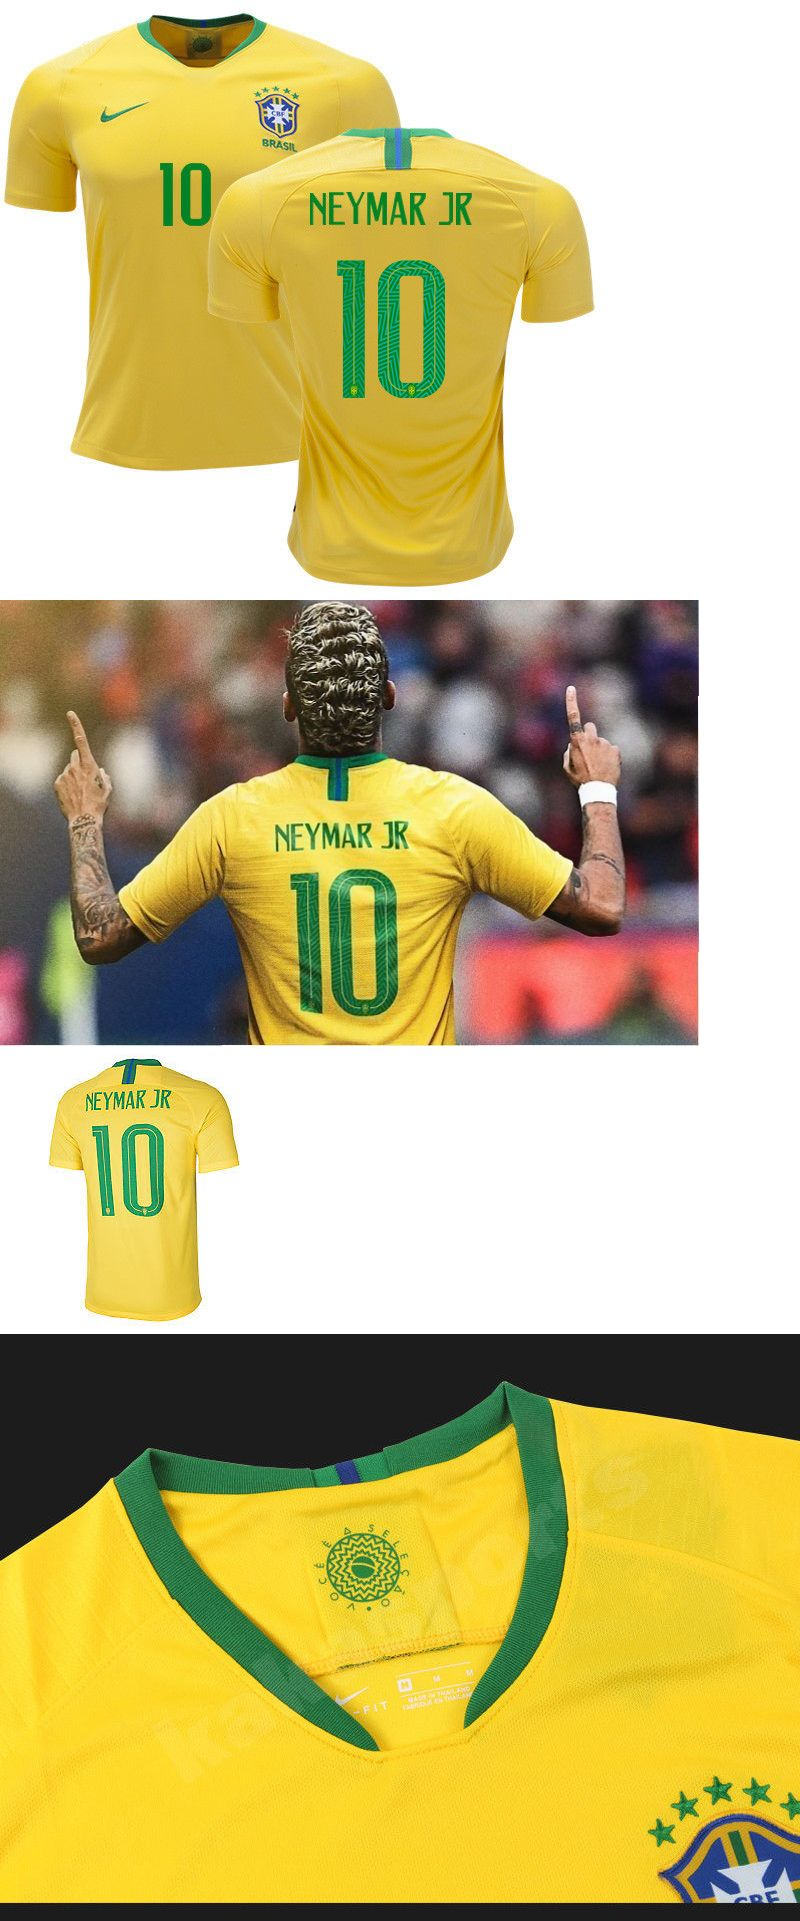 purchase cheap 7d14a 4b84d Clothing Shoes and Accessories 159178: Neymar Soccer Jersey ...